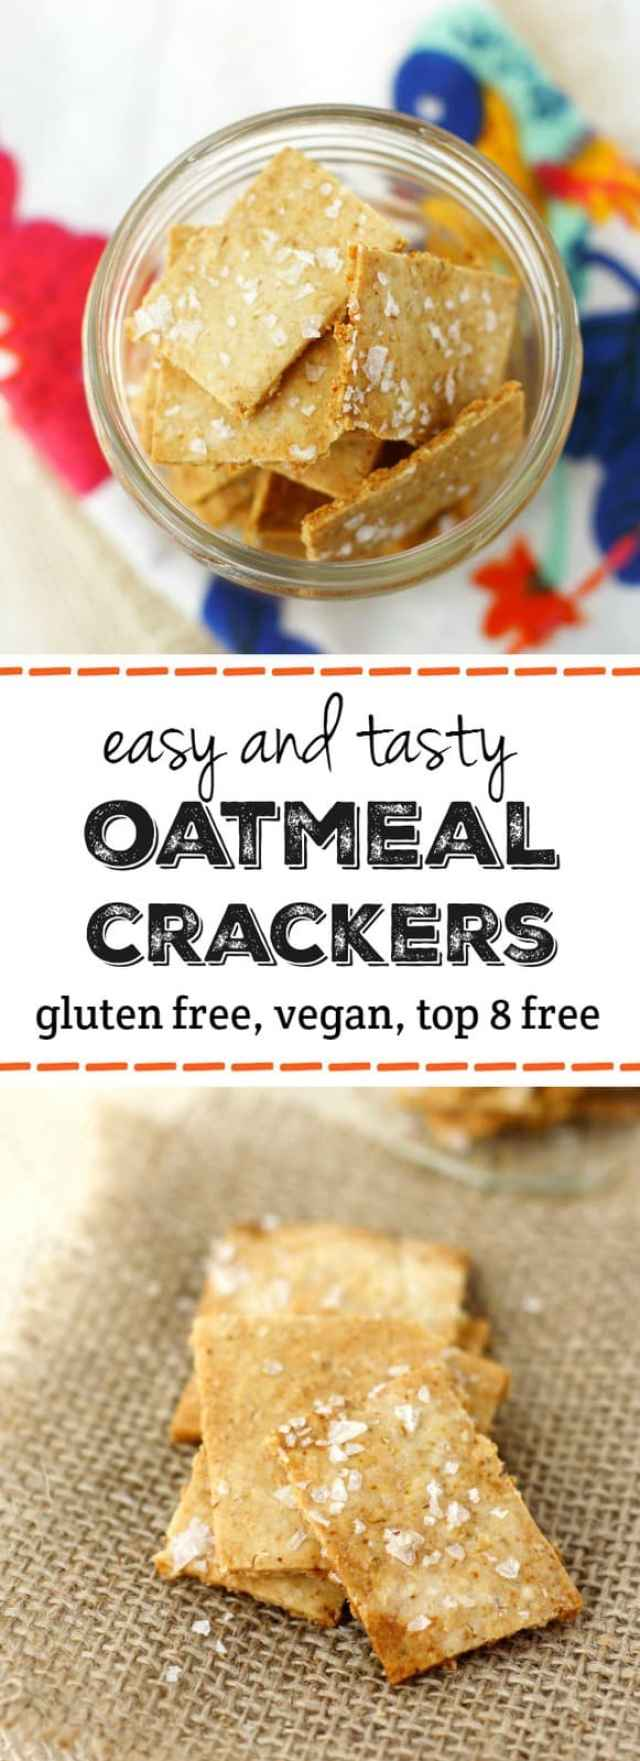 ... pretty bee cinnamon sugar oatmeal crackers the pretty bee oat crackers